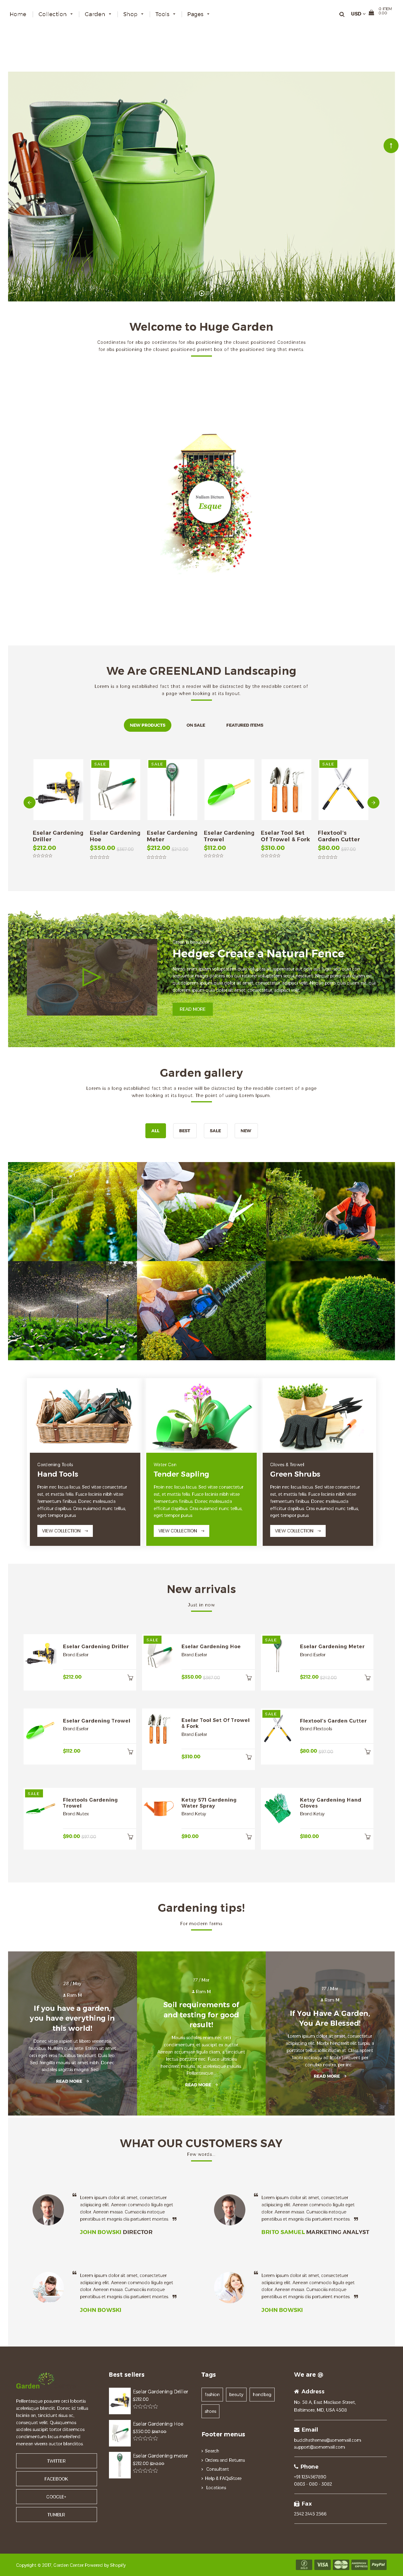 5 Best SHOPIFY Premium Themes Collection for SERVICES Store 2017 - Garden Accessories Gardening Landscaping Tools Shopify Theme